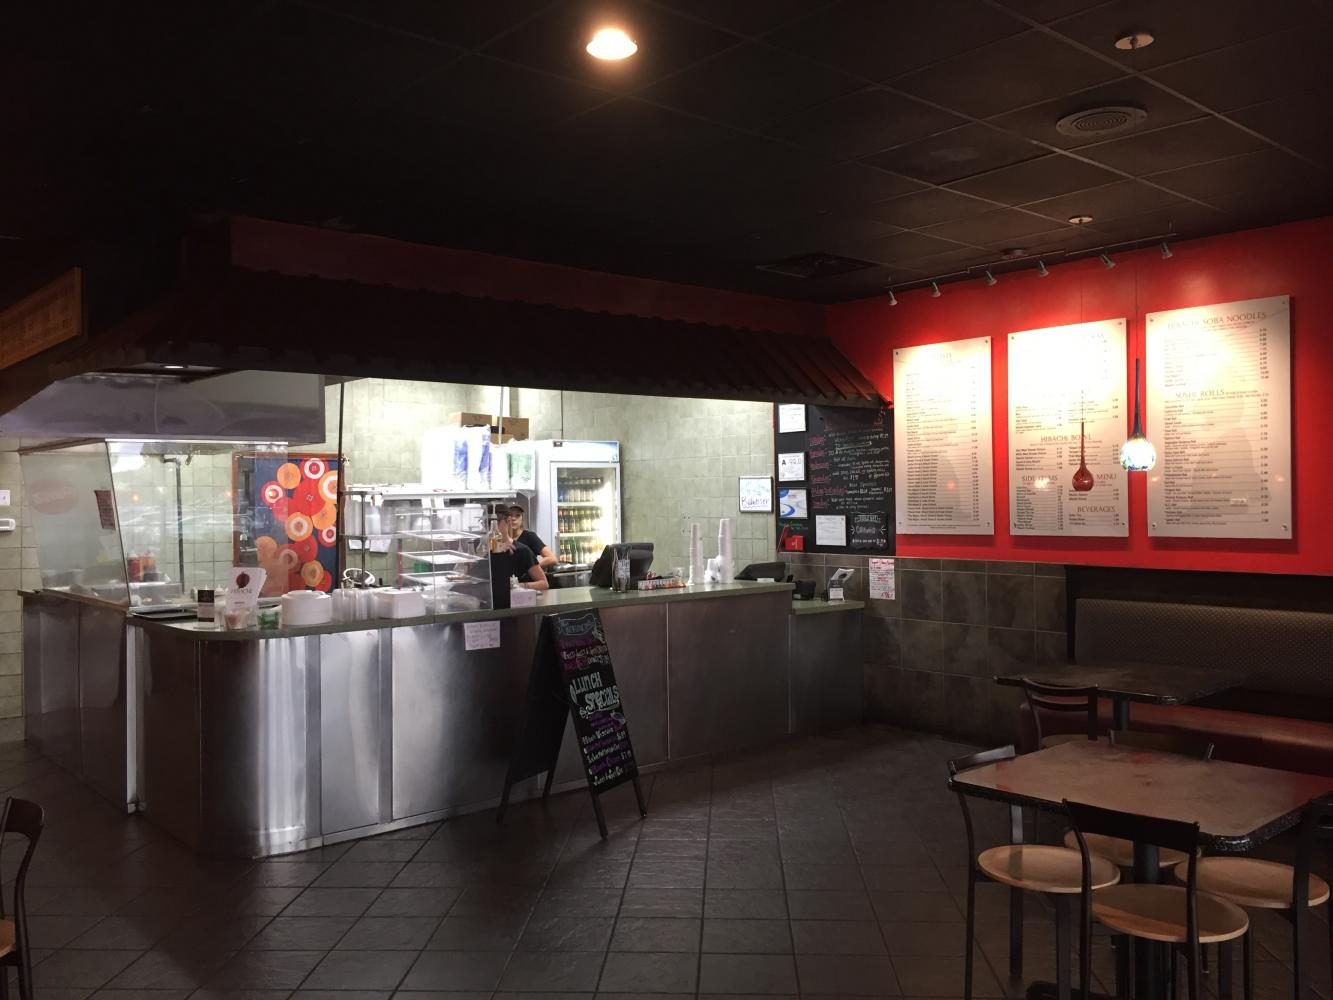 Hibachi Bistro, photographed above, is one of the places listed as a great stop for hungry students.